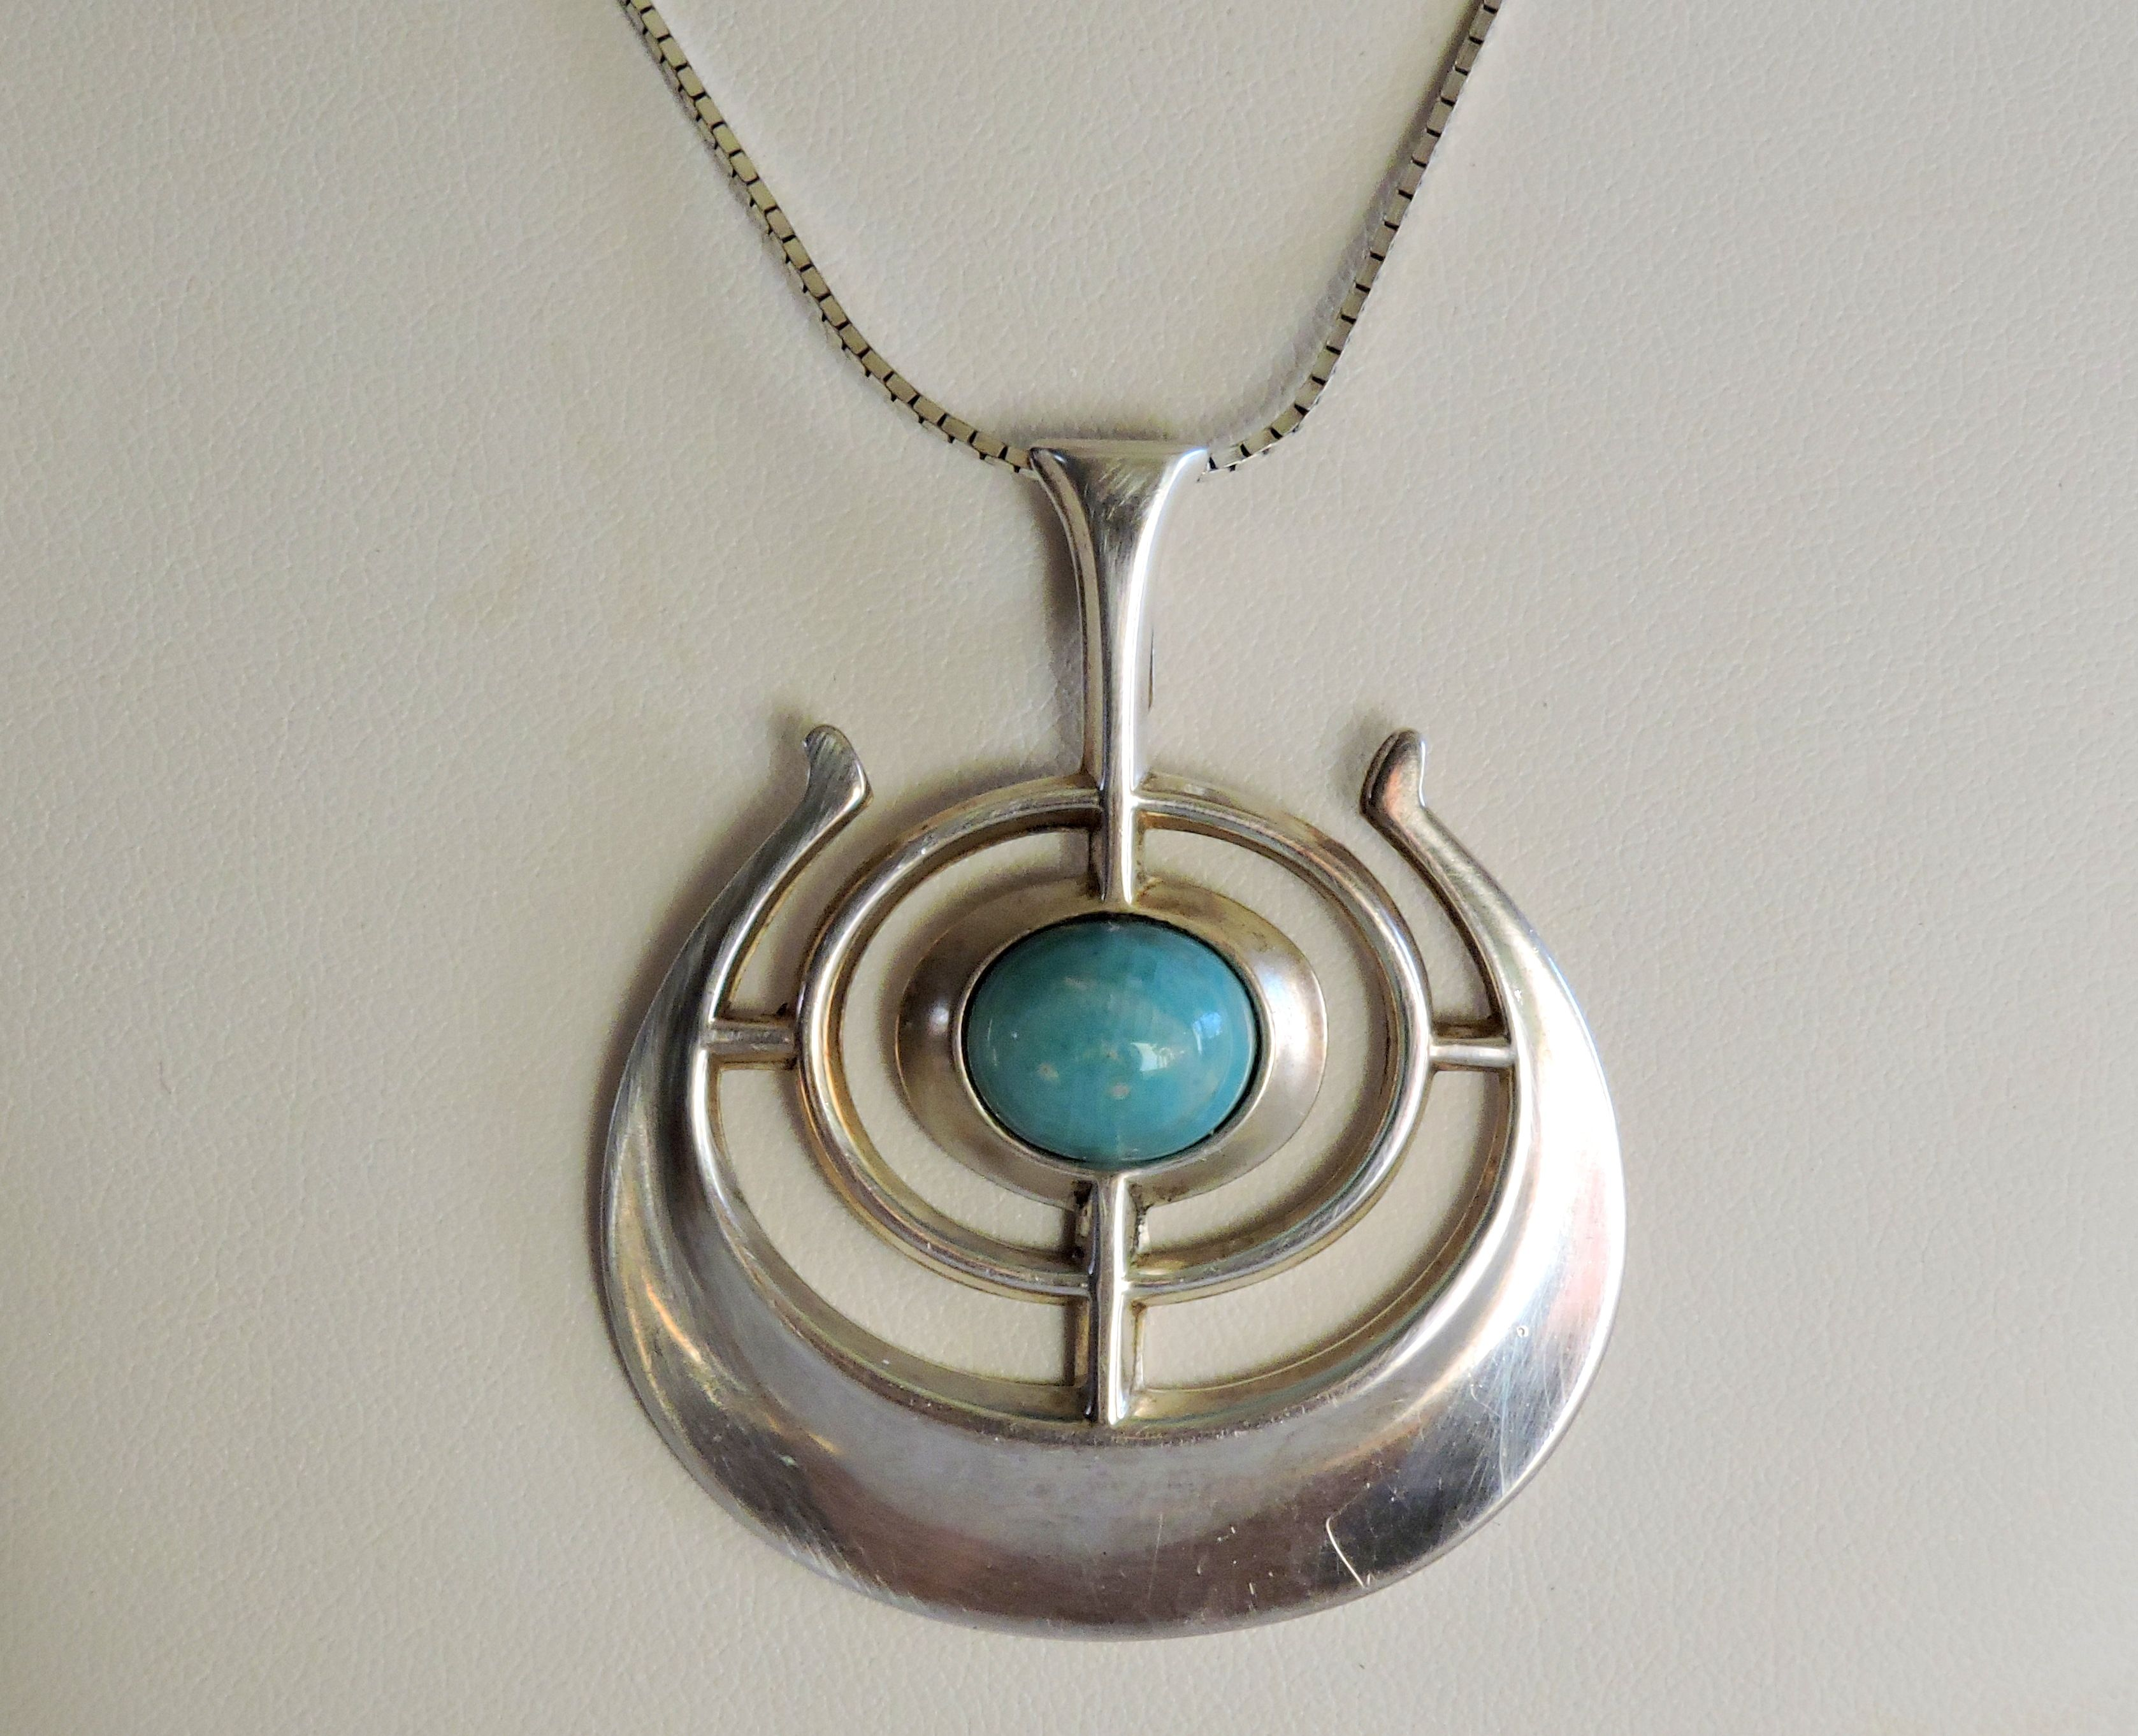 Vintage Sterling Silver With Amozonite Cabochon Pendant by